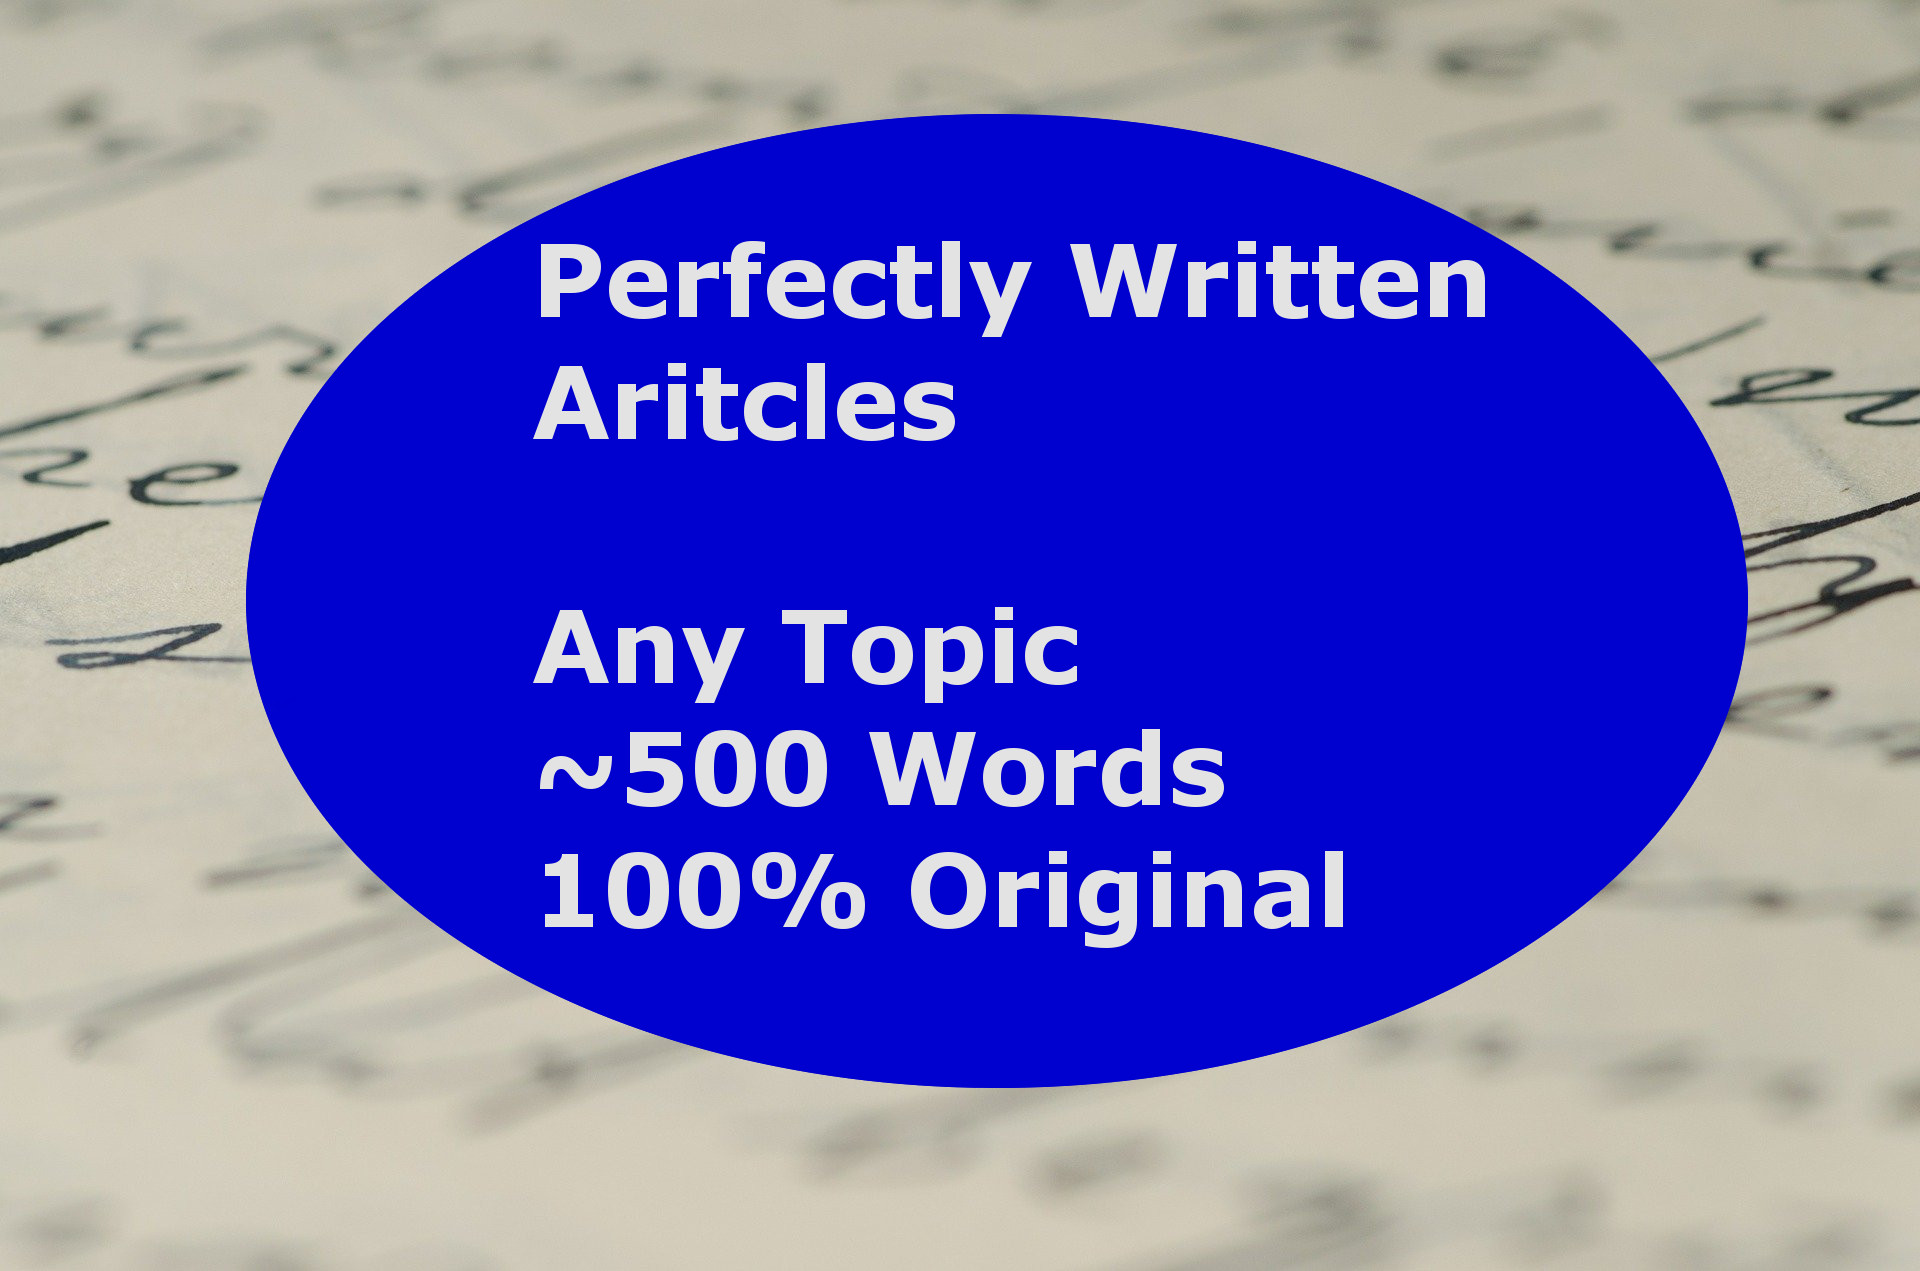 I will provide you with perfectly written,  original articles around 500 words